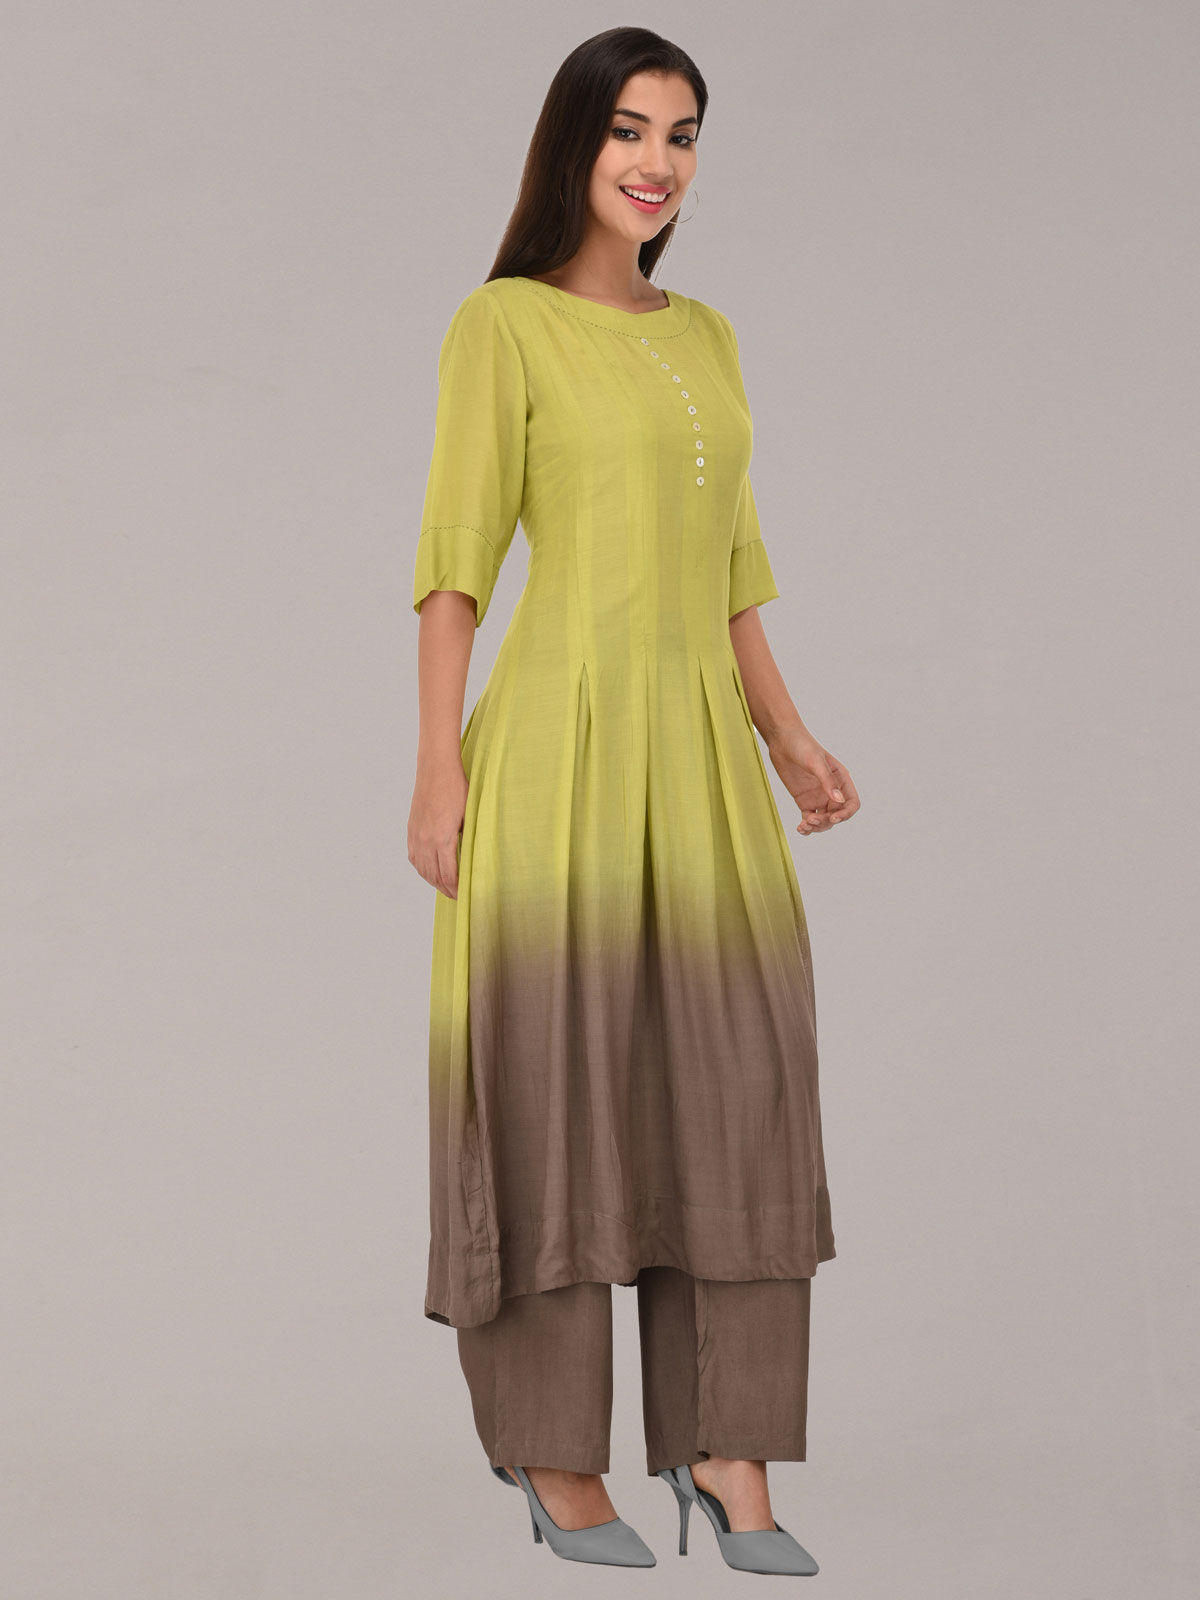 Modal ombre green & grey tunic with bottom